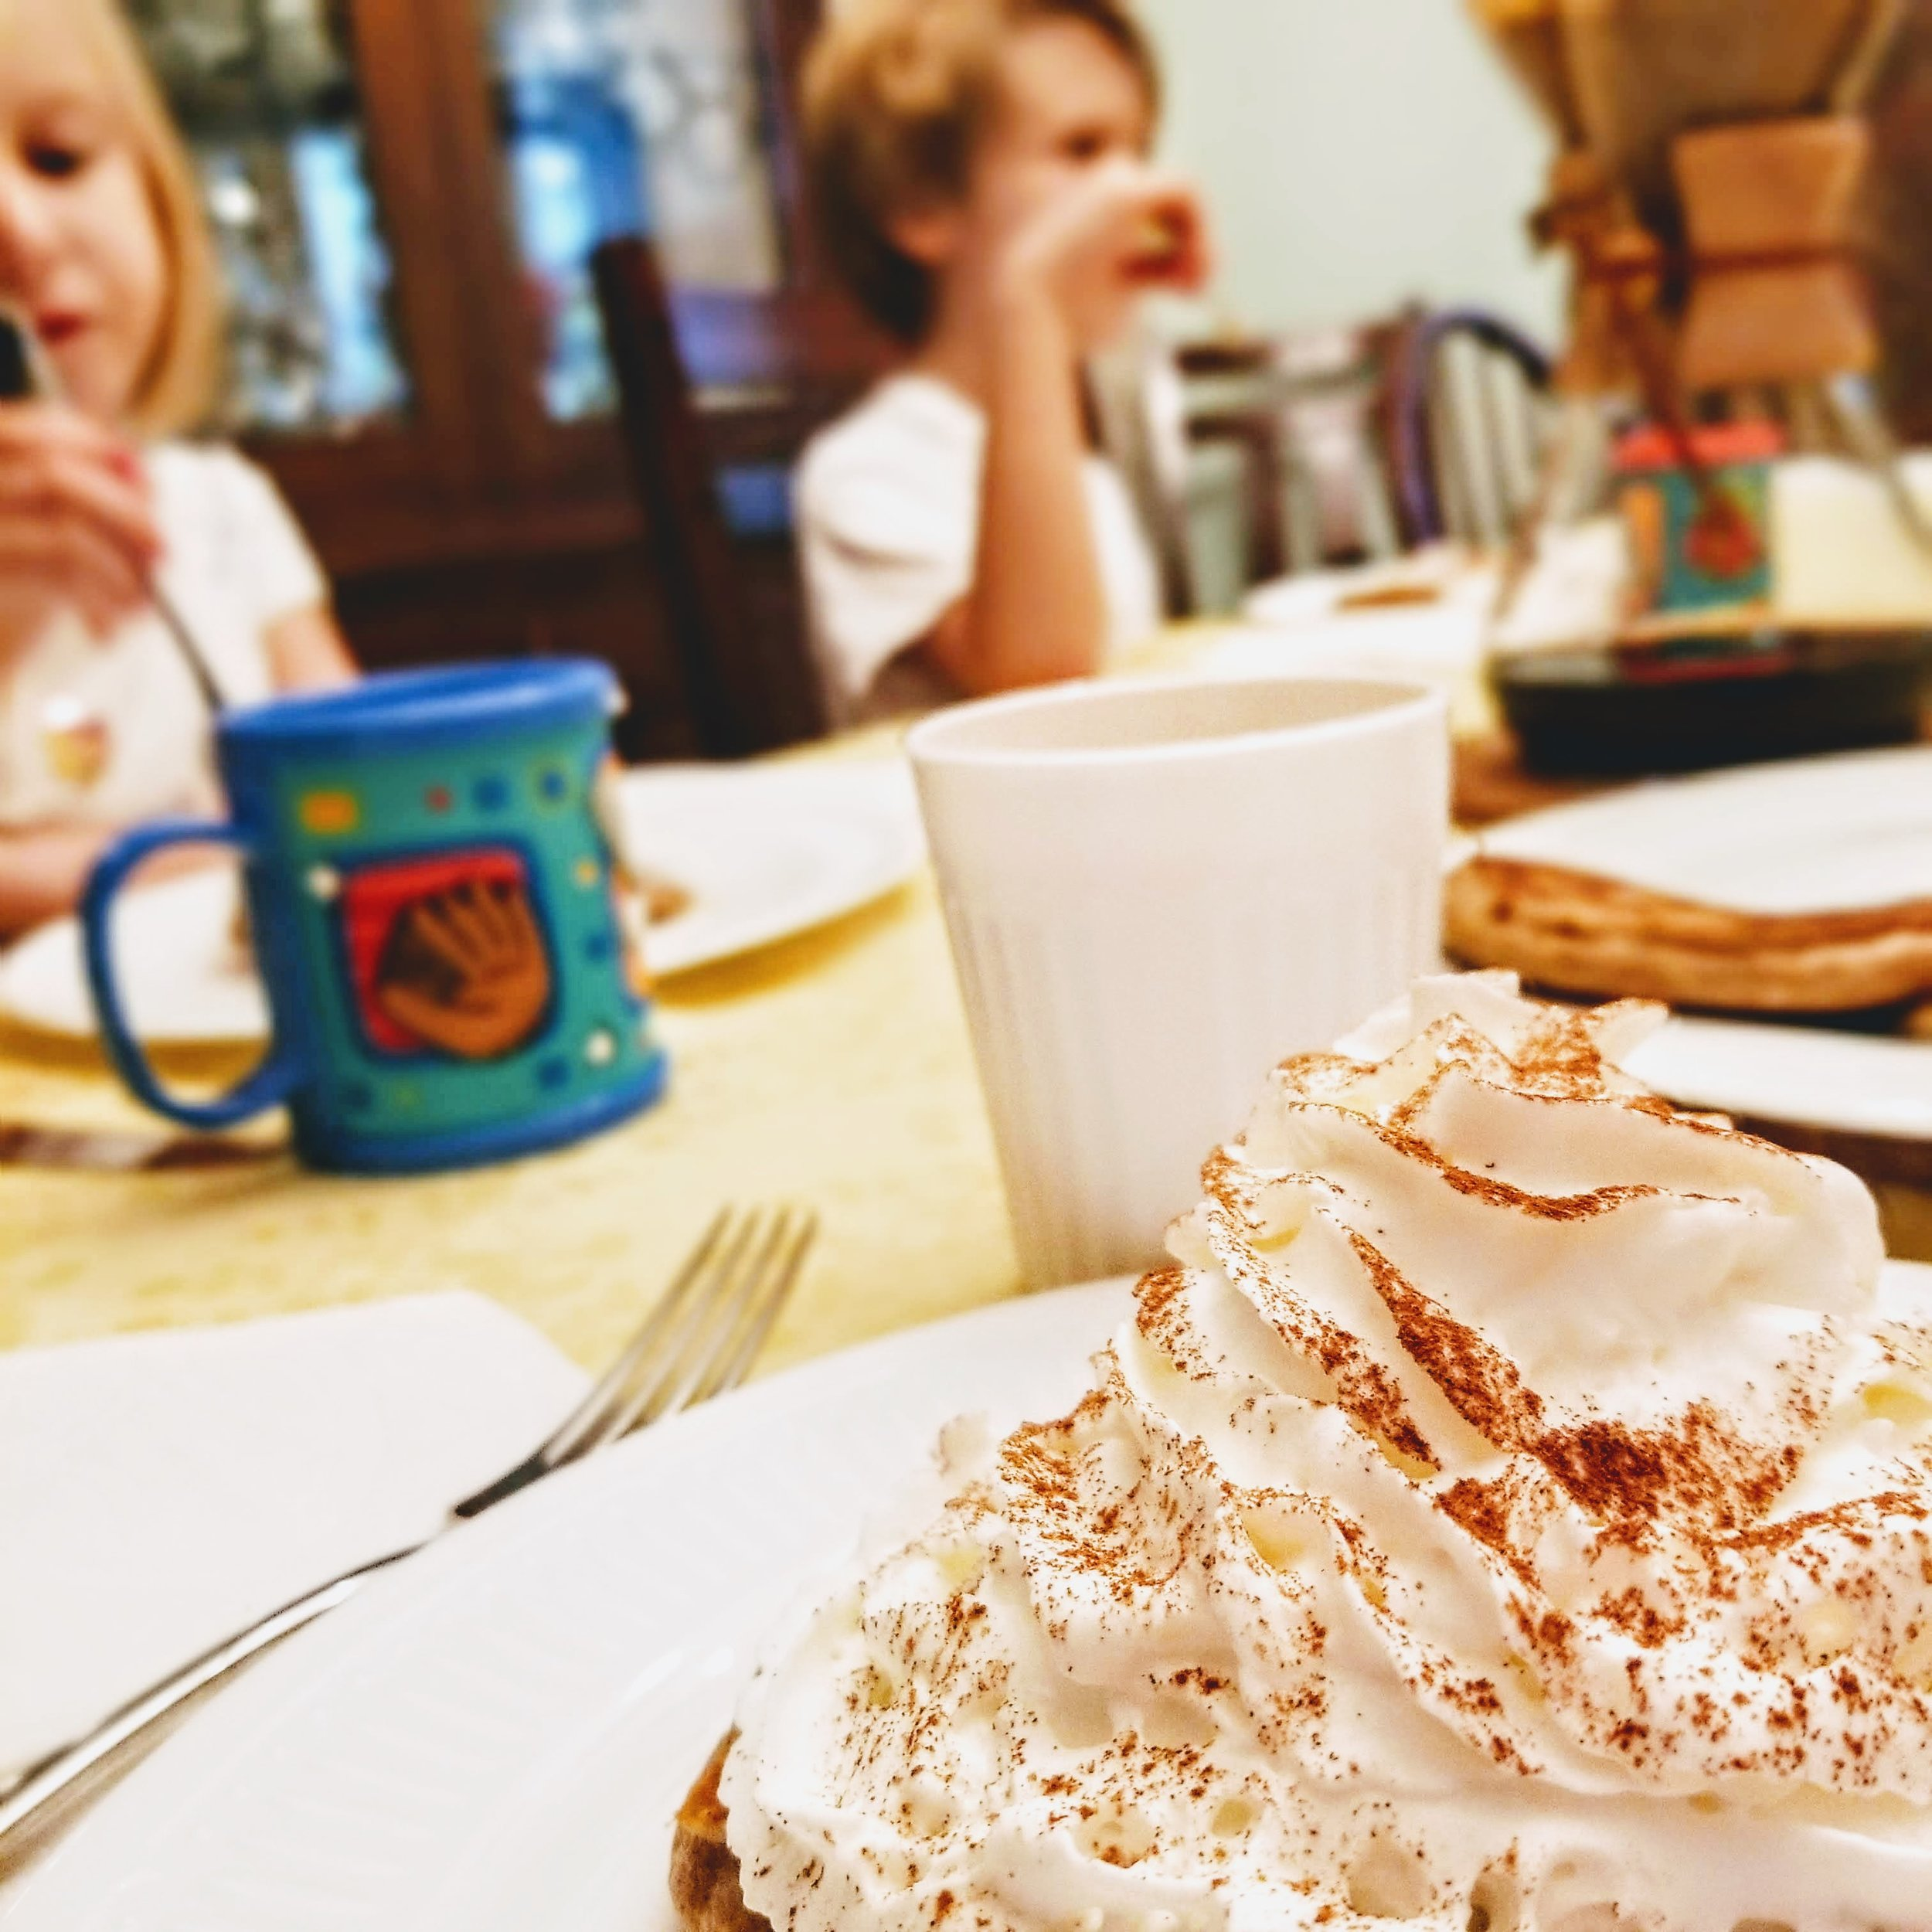 A generous mound of whipped cream and a sprinkling of cinnamon make these as beautiful as anything you would get in a restaurant.